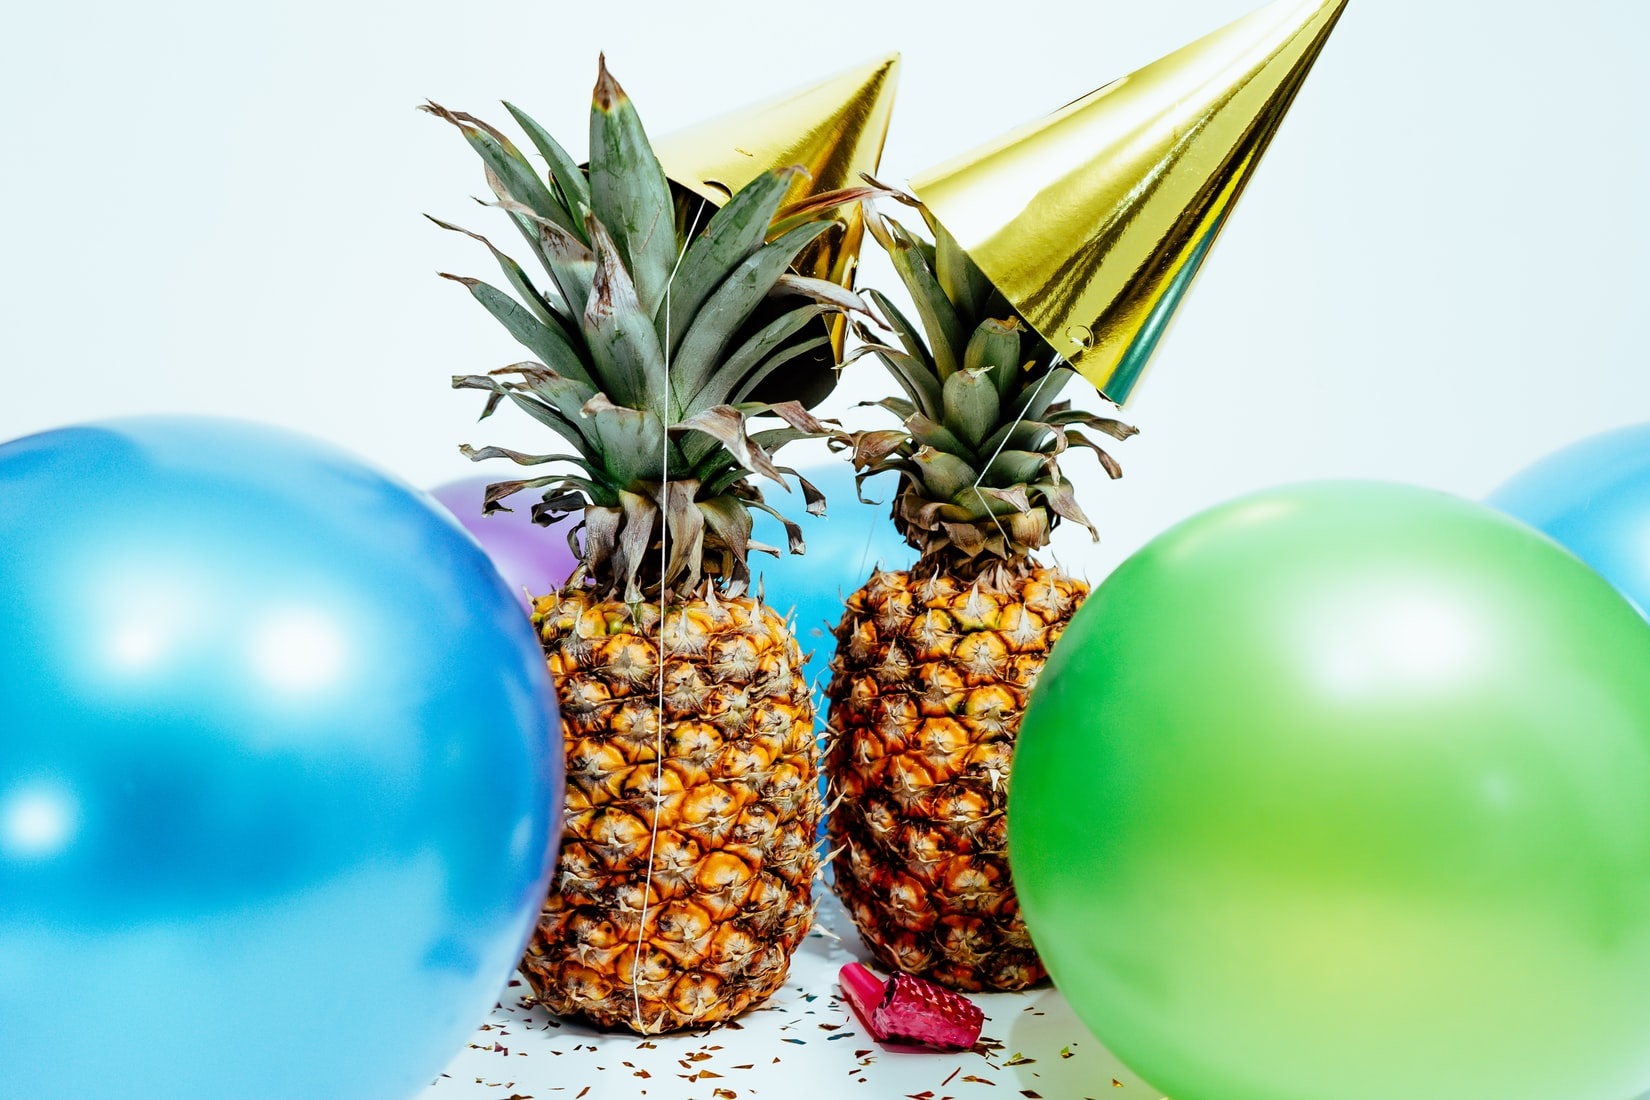 Two pineapples with gold party hats near blue and green balloons during the new year